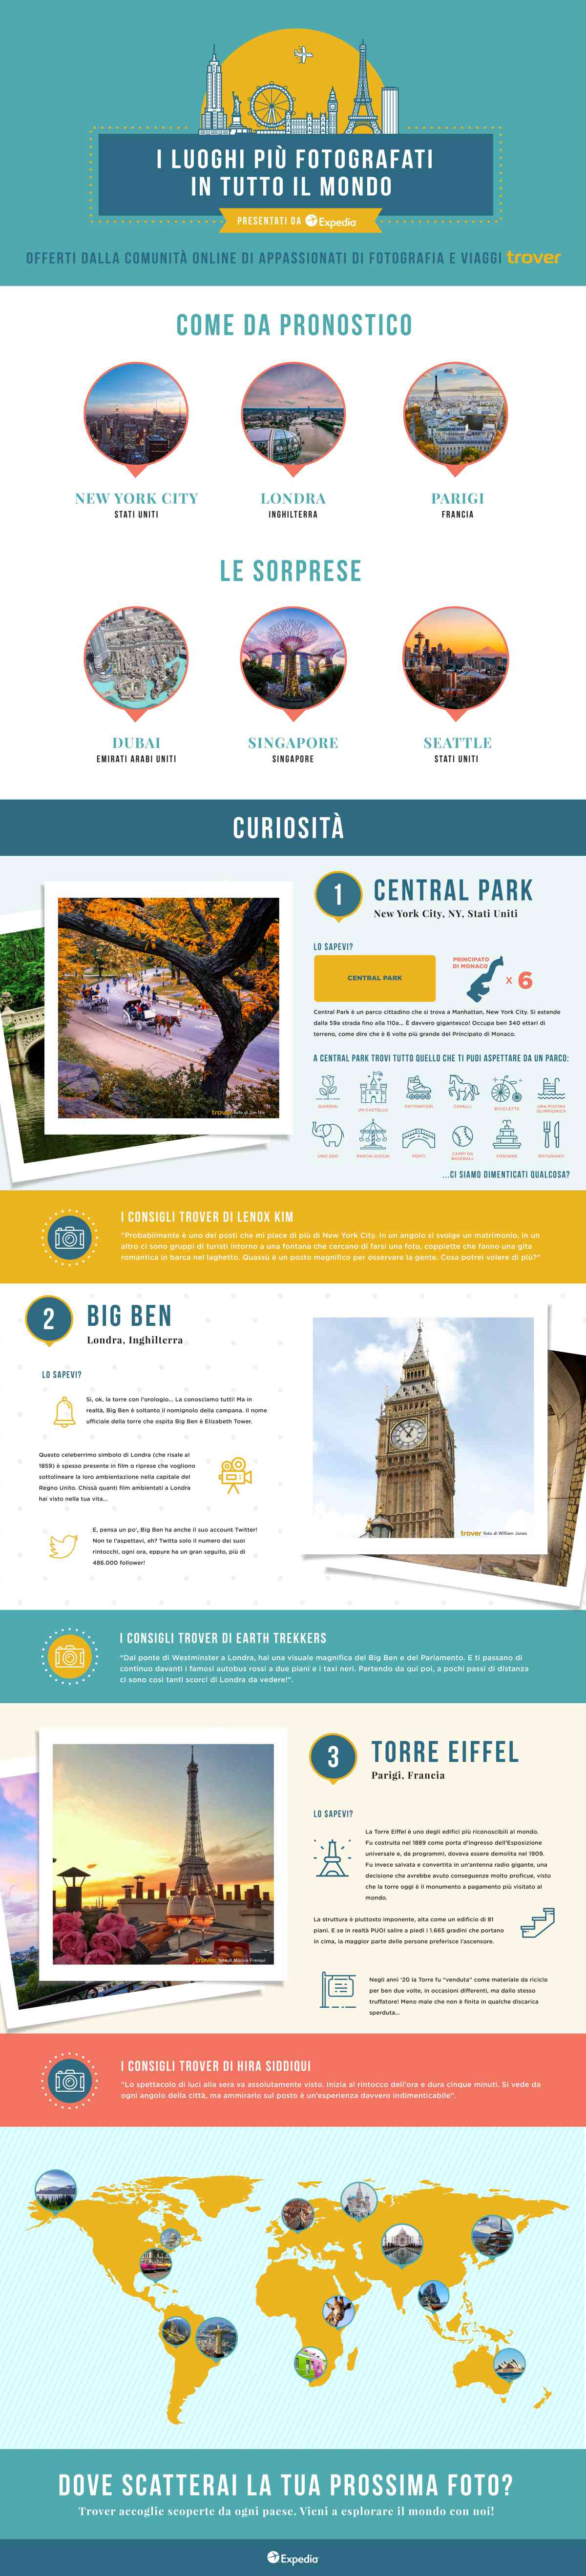 it_IT_Trover_Infographic.jpg?1531911459